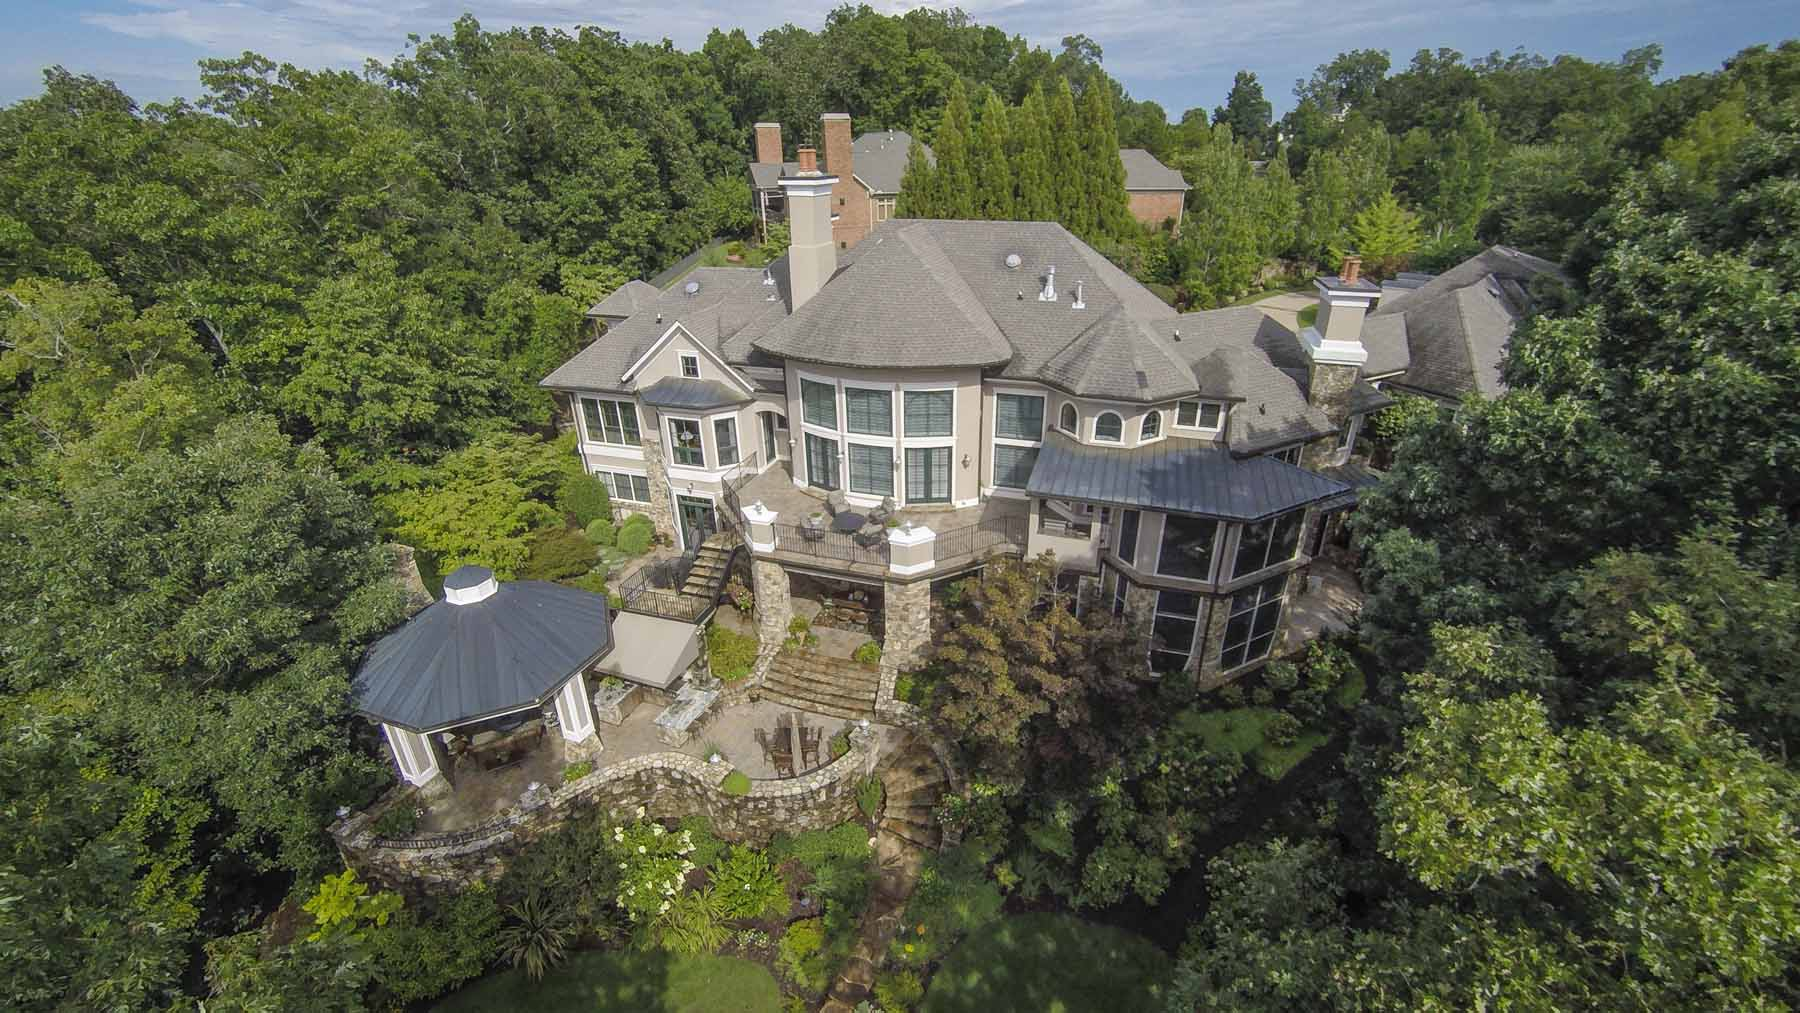 Maison unifamiliale pour l Vente à Magnificent Private Waterfront Estate 5720 Point West Oakwood, Georgia 30566 États-Unis